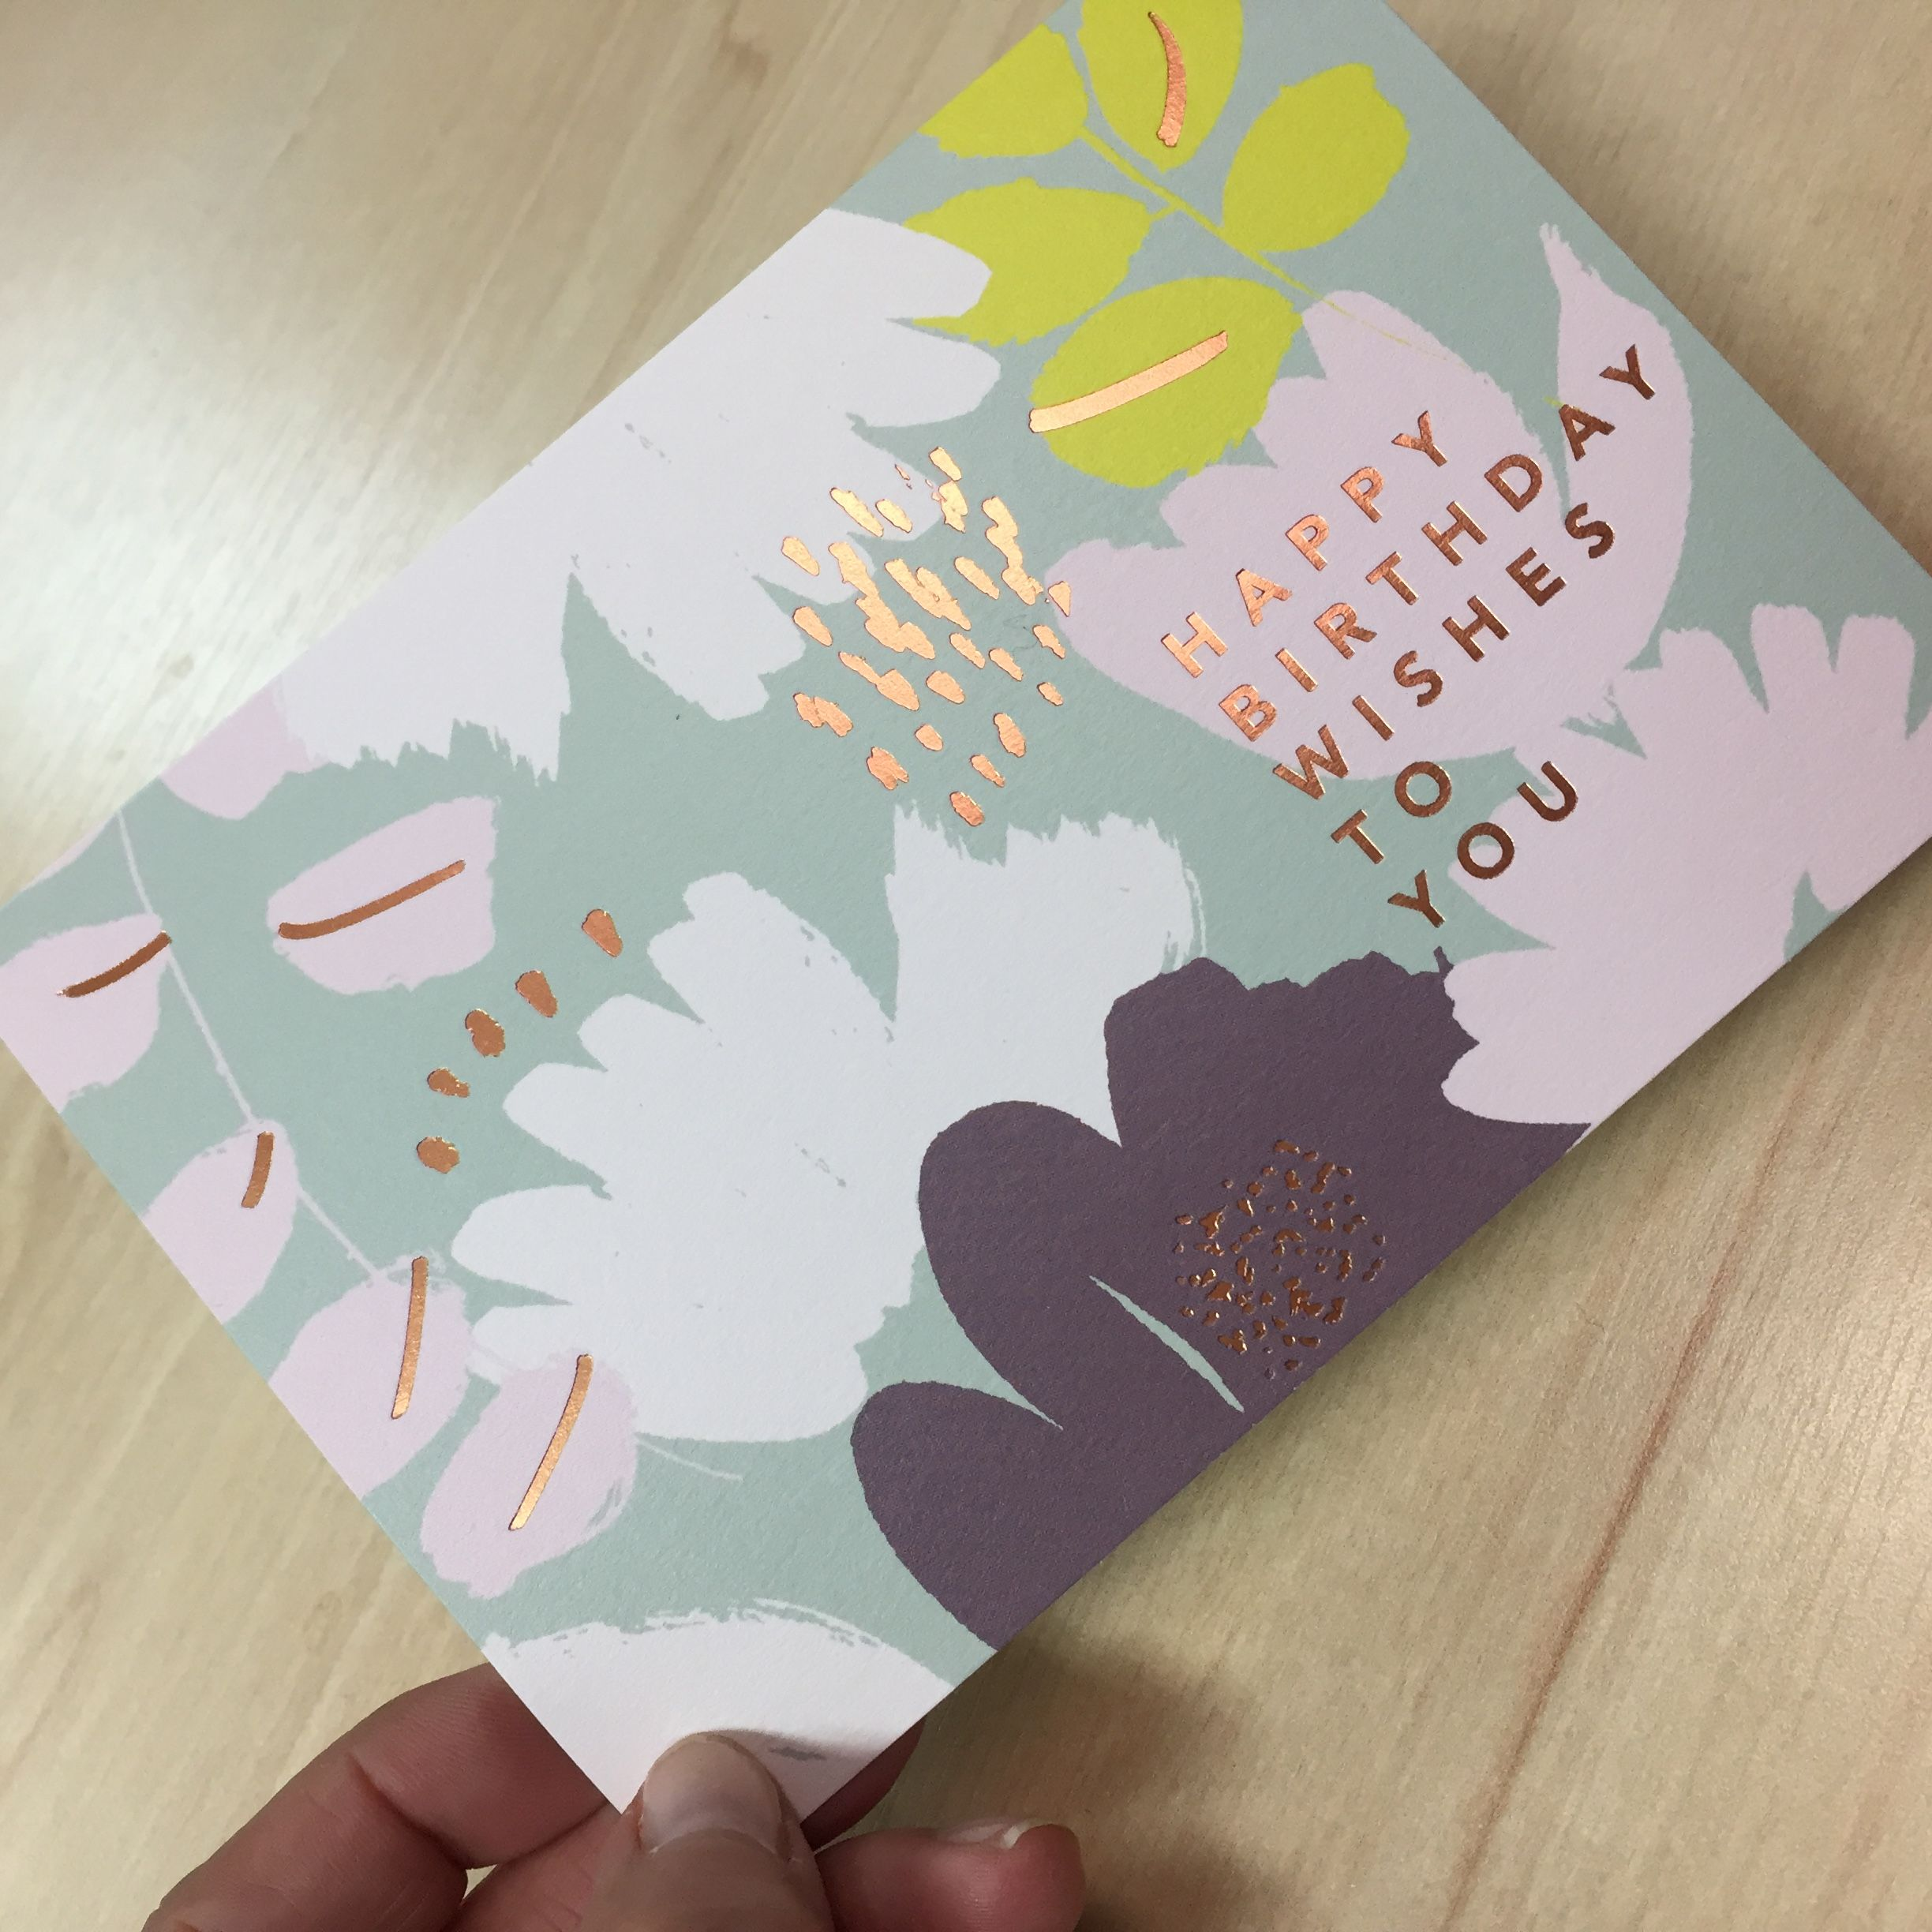 Loving the copper foil highlights on our new calico greeting cards